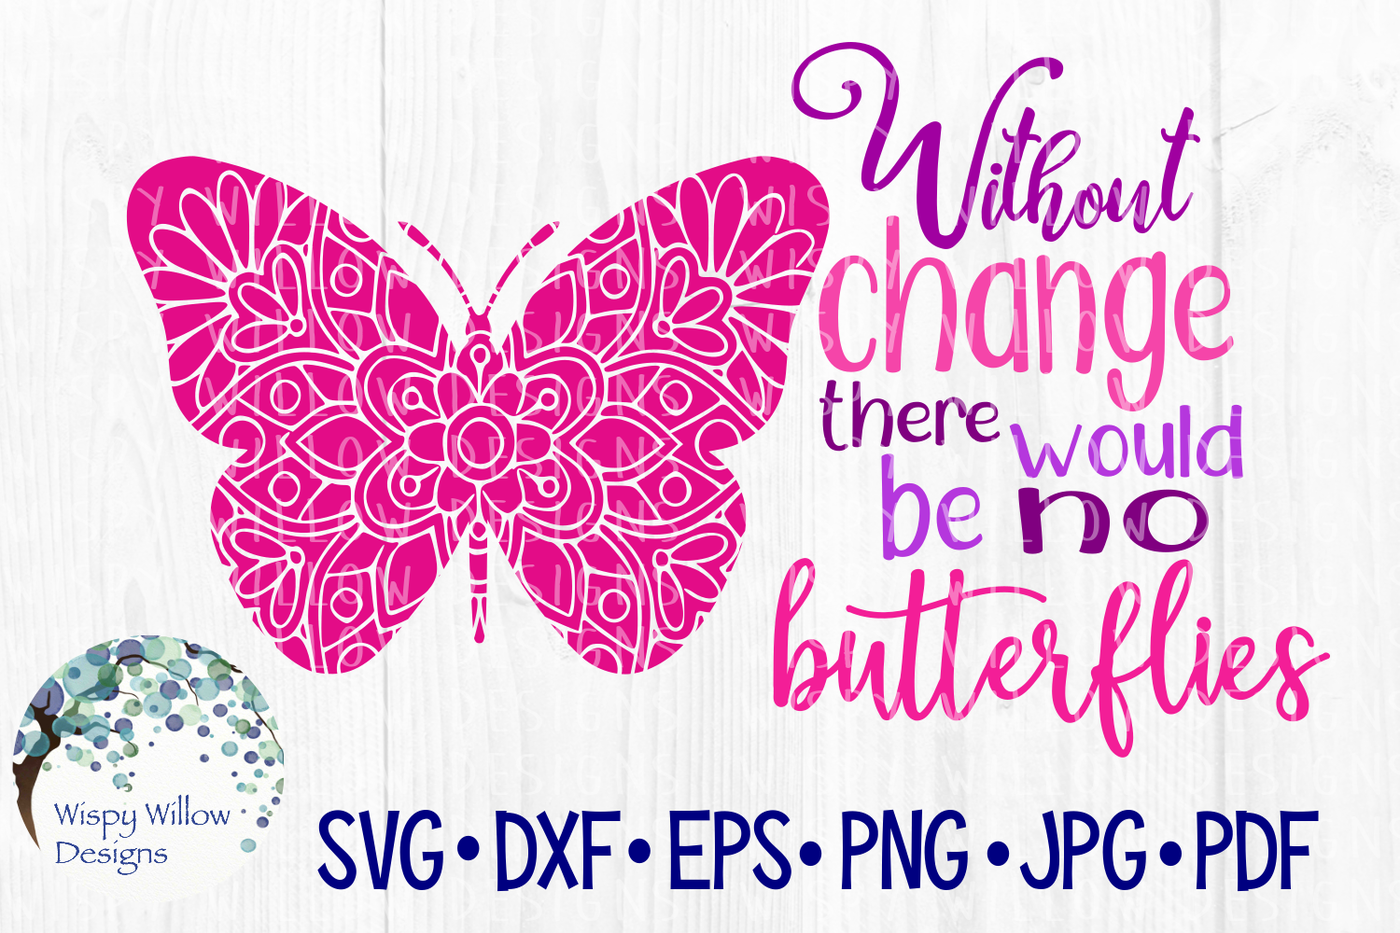 Without Change There Would Be No Butterflies Svg Dxf Eps Png Jpg